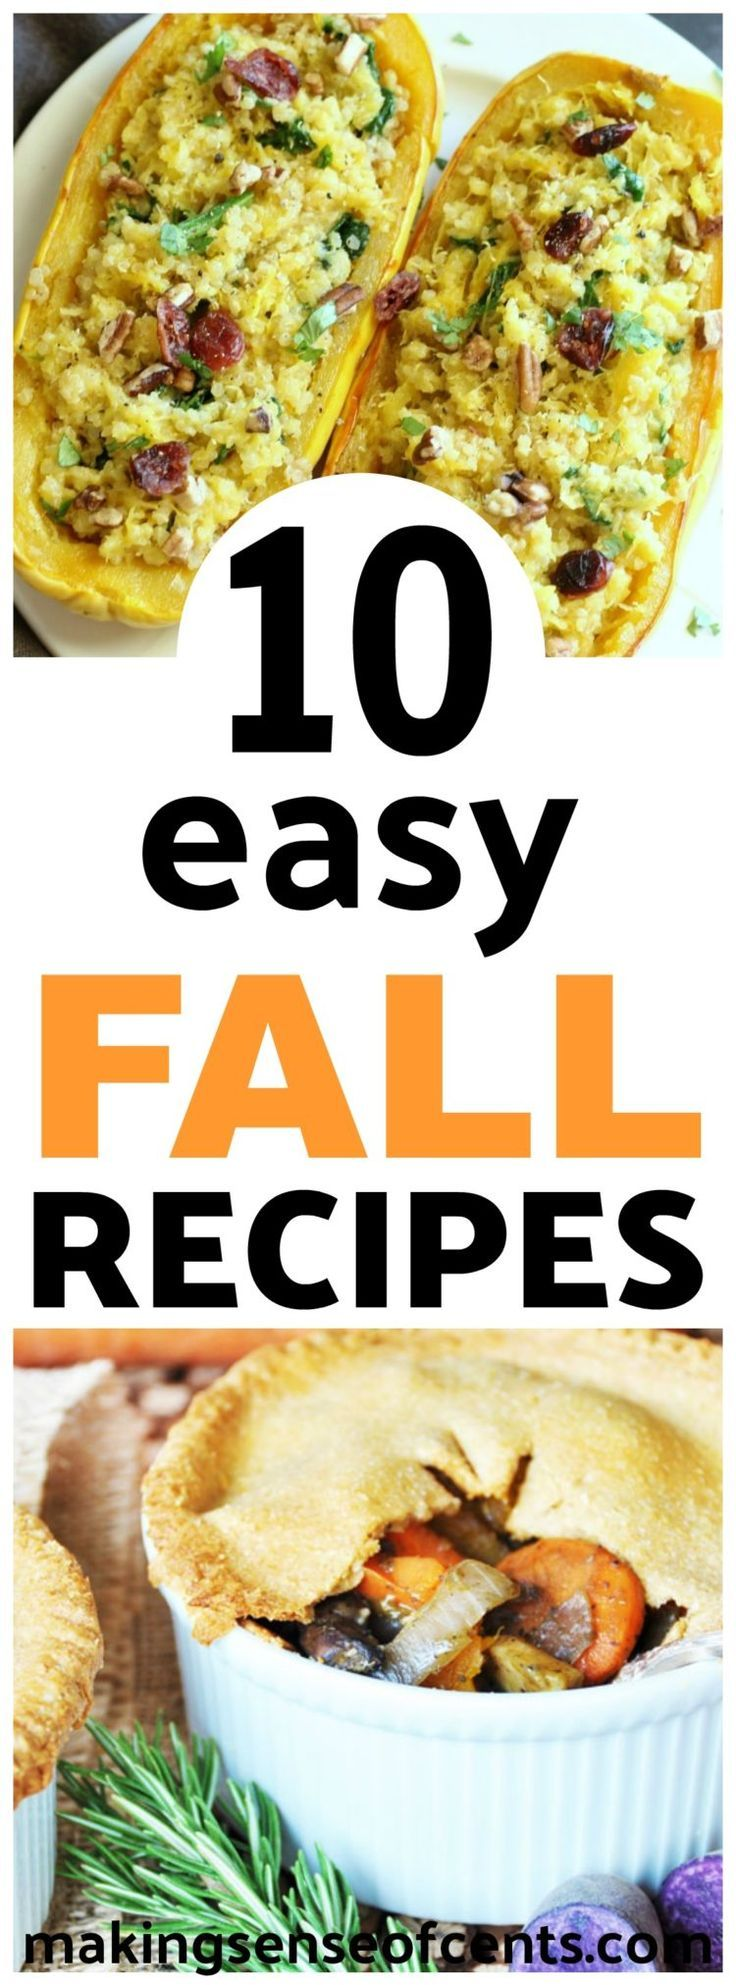 10 Easy Fall Recipes - Best Fall Dinner Ideas For Your Meal Plan